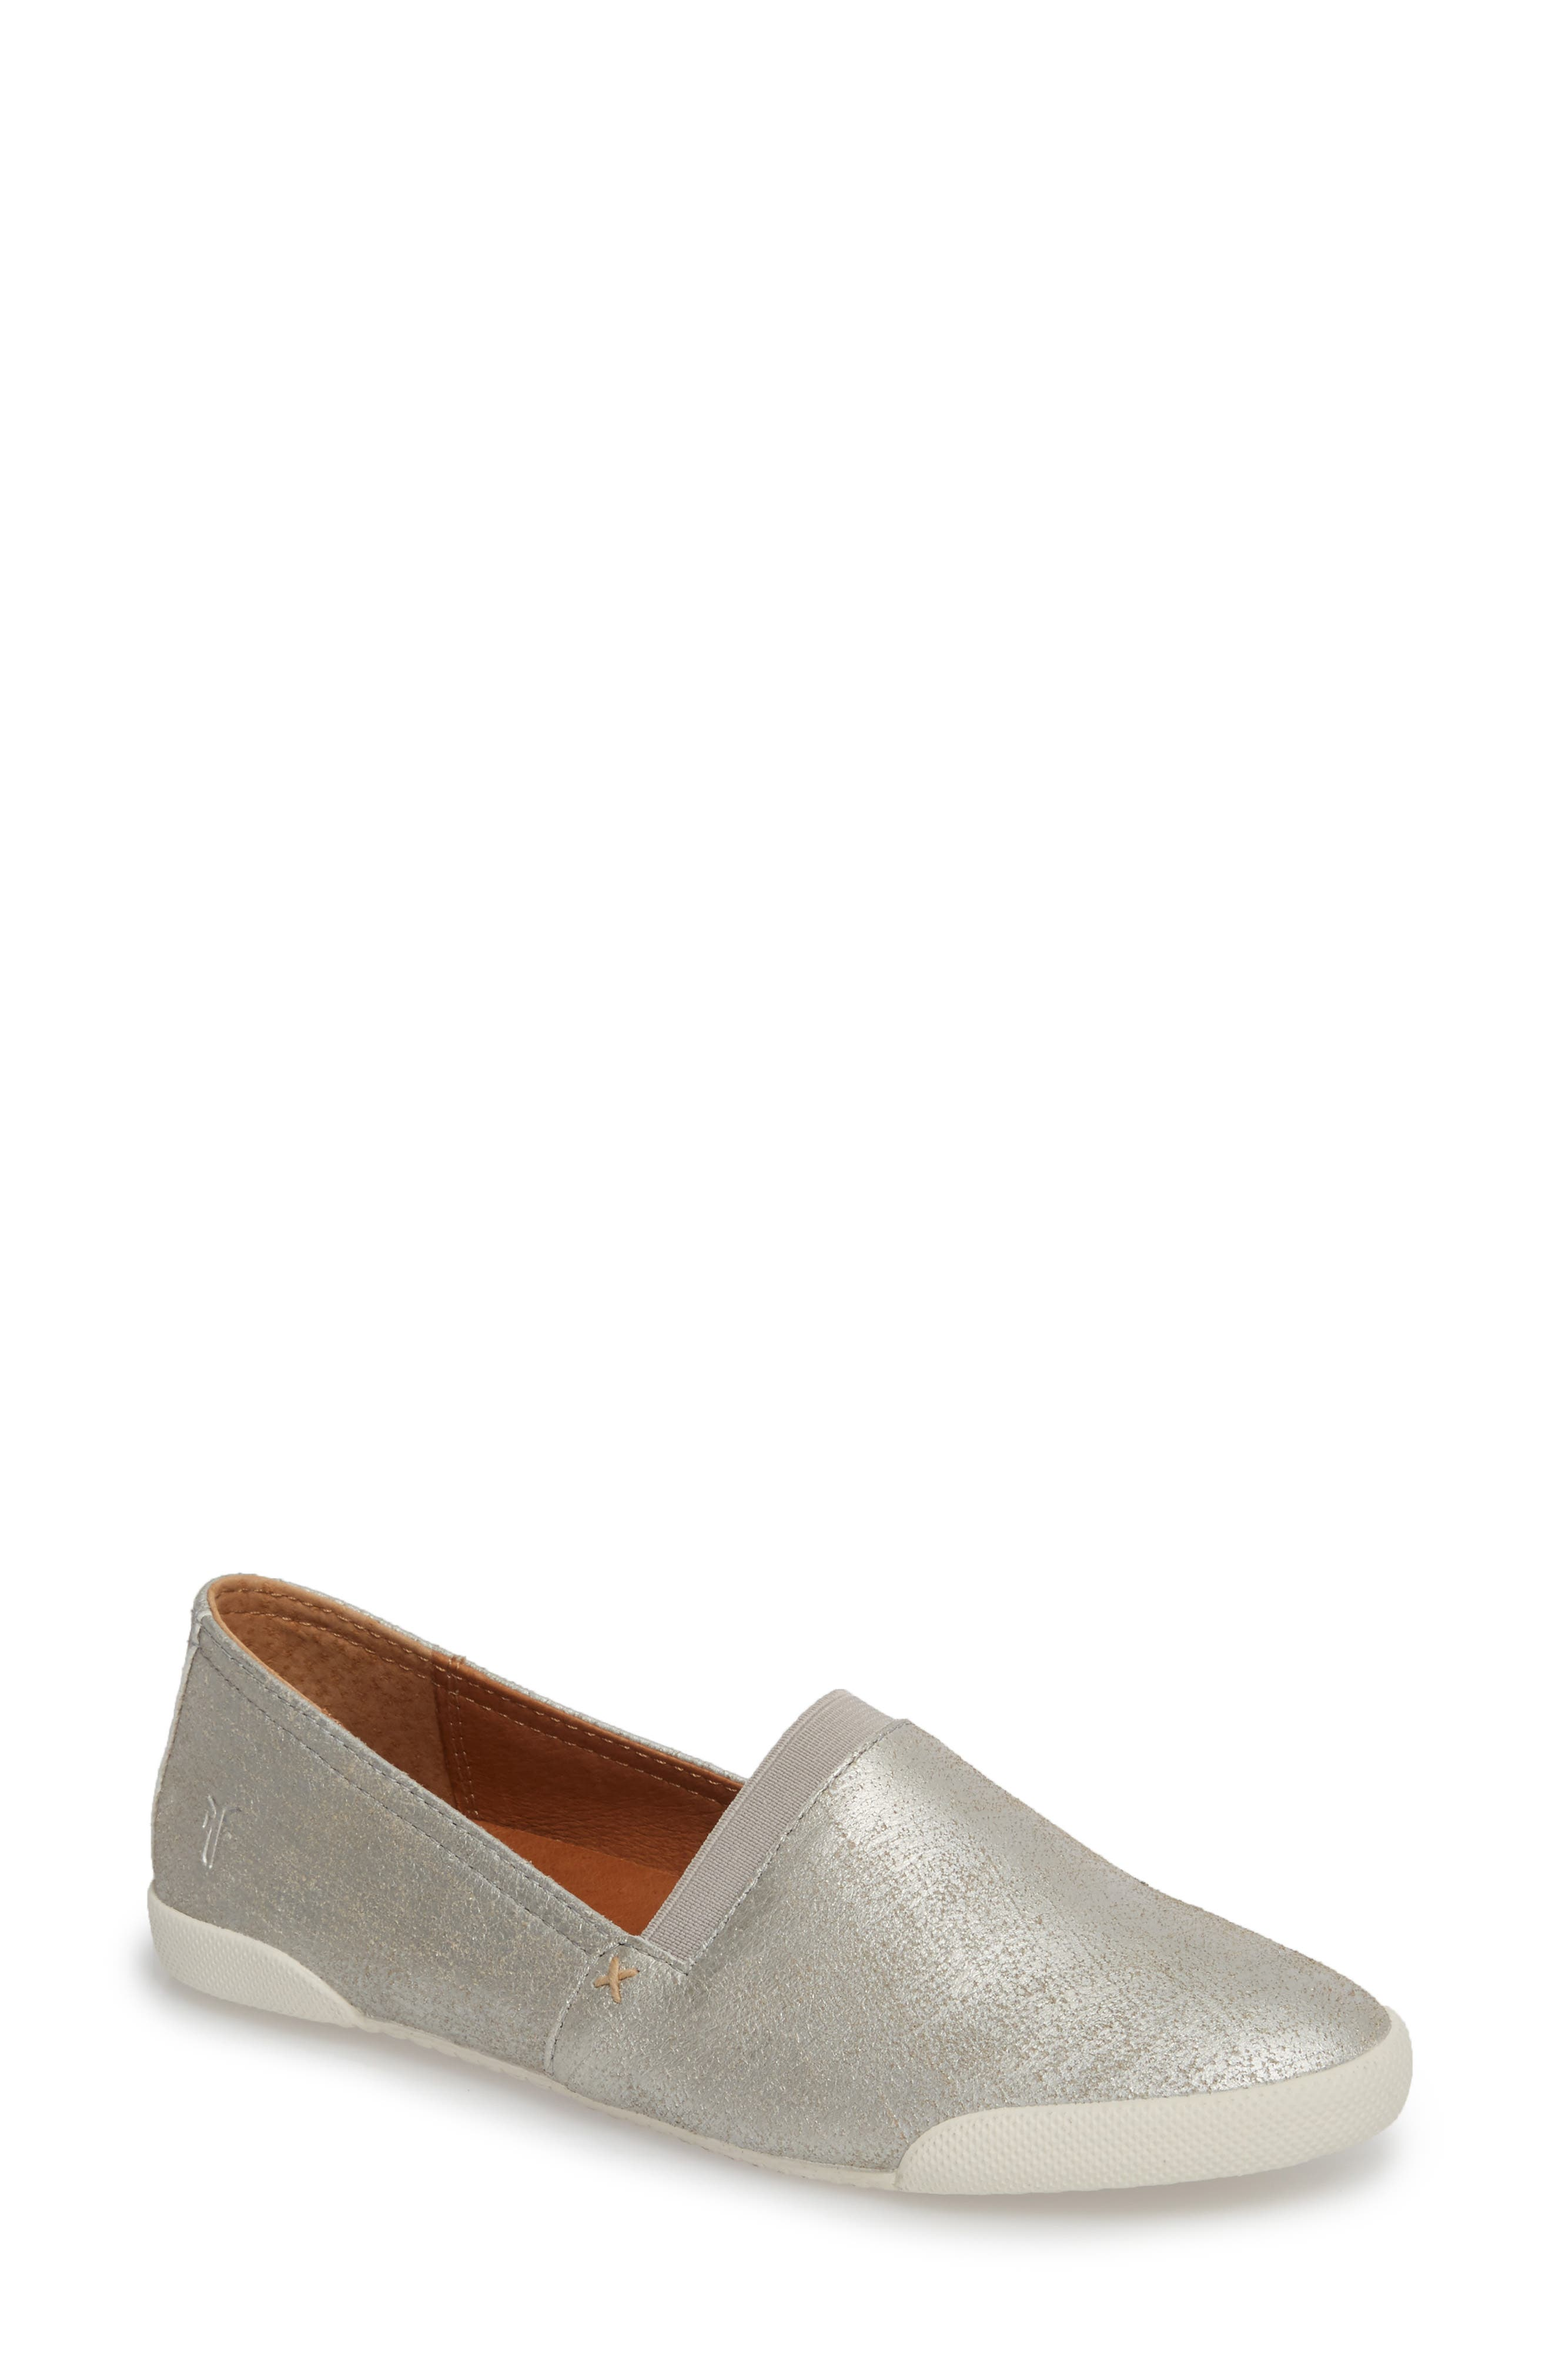 FRYE 'Melanie' Slip-On, Main, color, SILVER